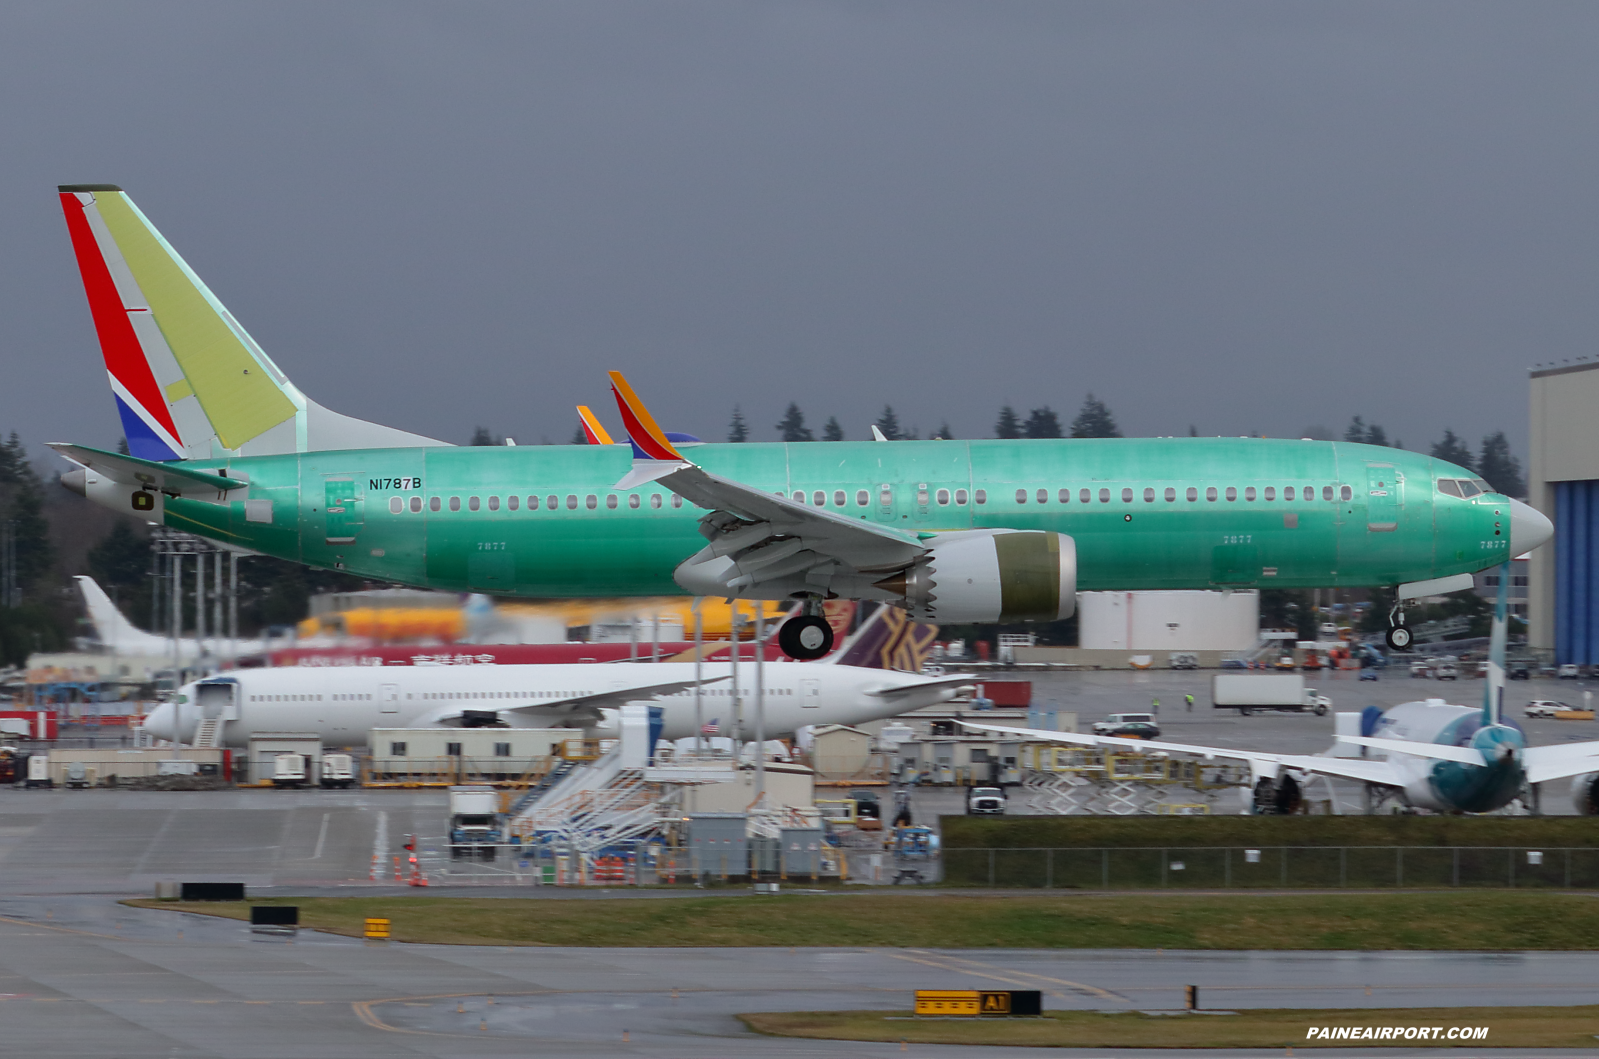 737 N1787B at Paine Field